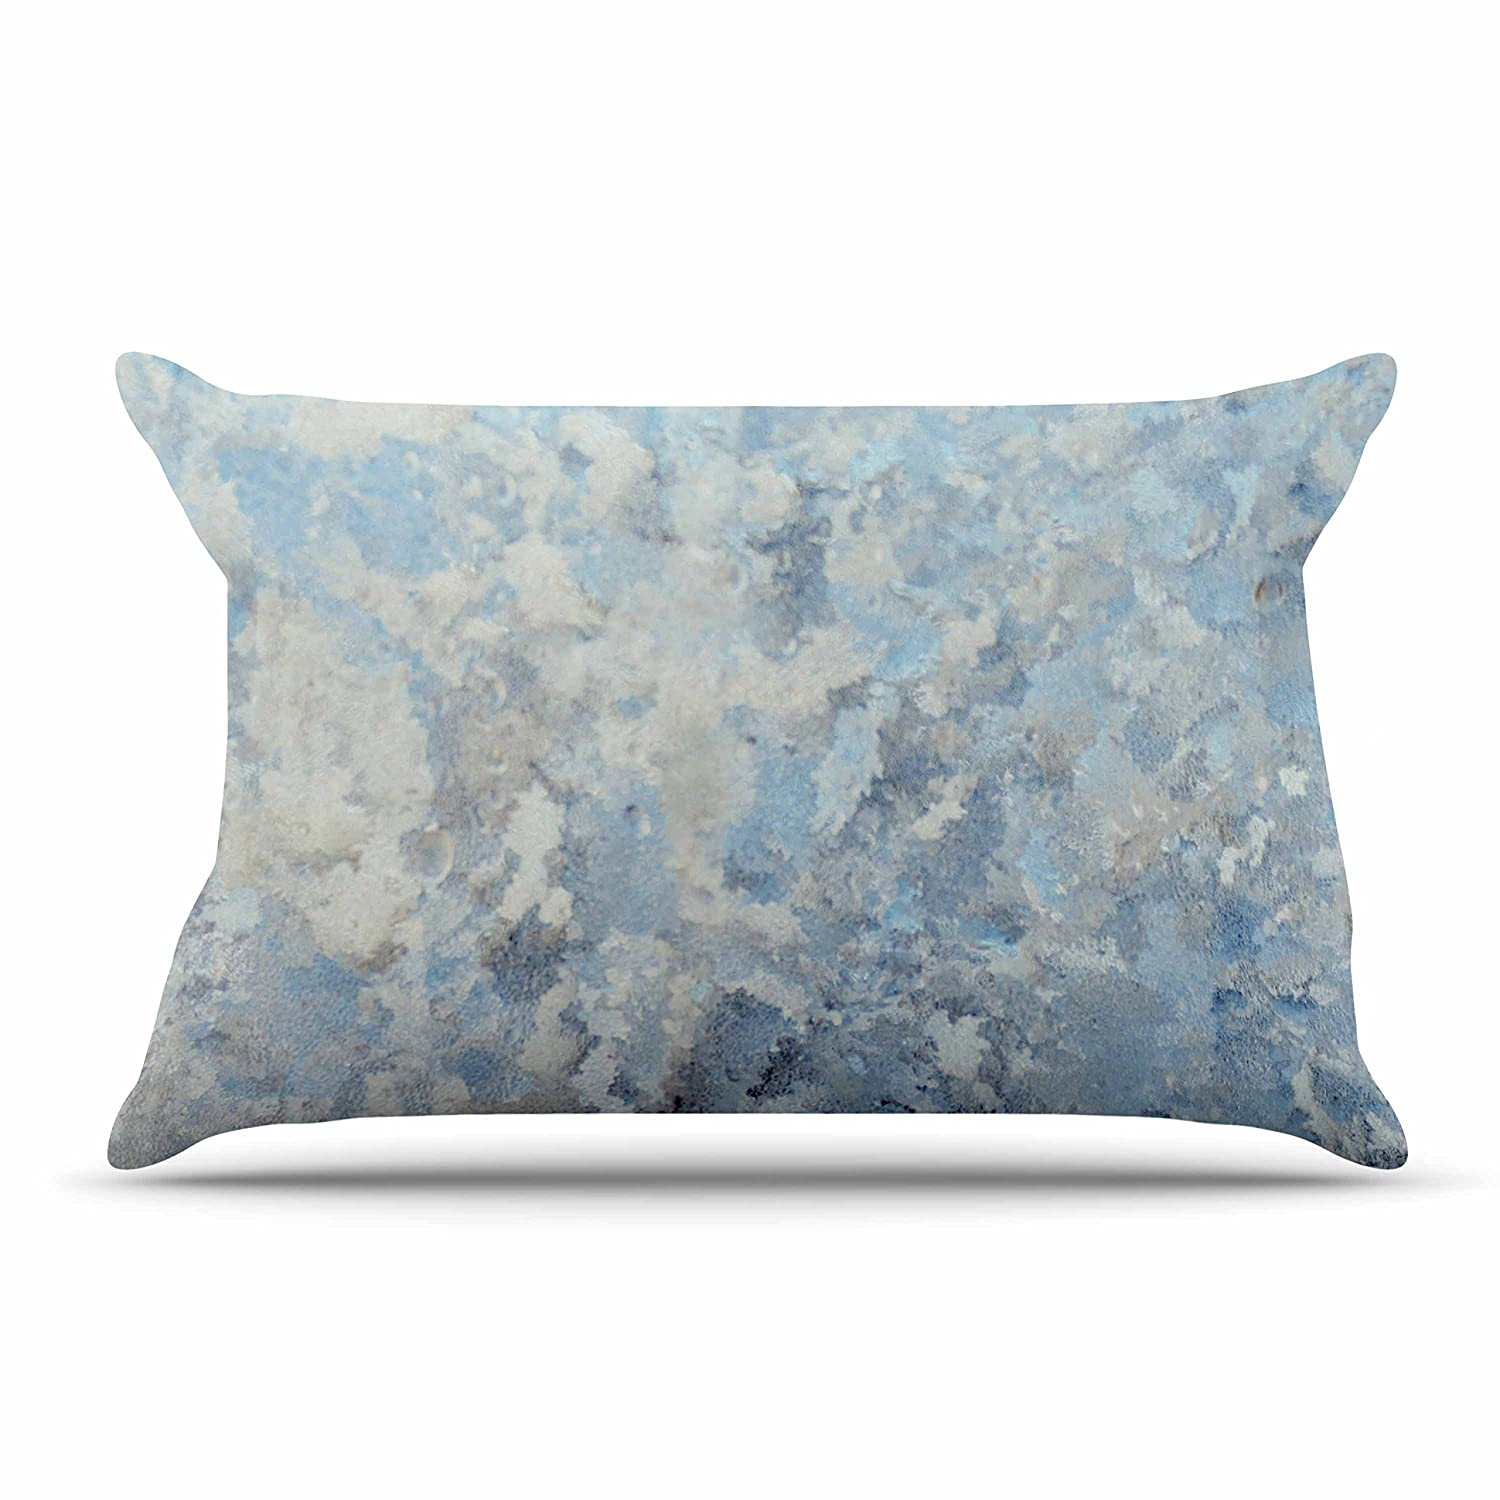 30 x 20 Pillow Sham Kess InHouse Chelsea Victoria Frosted Marble Blue White Photography